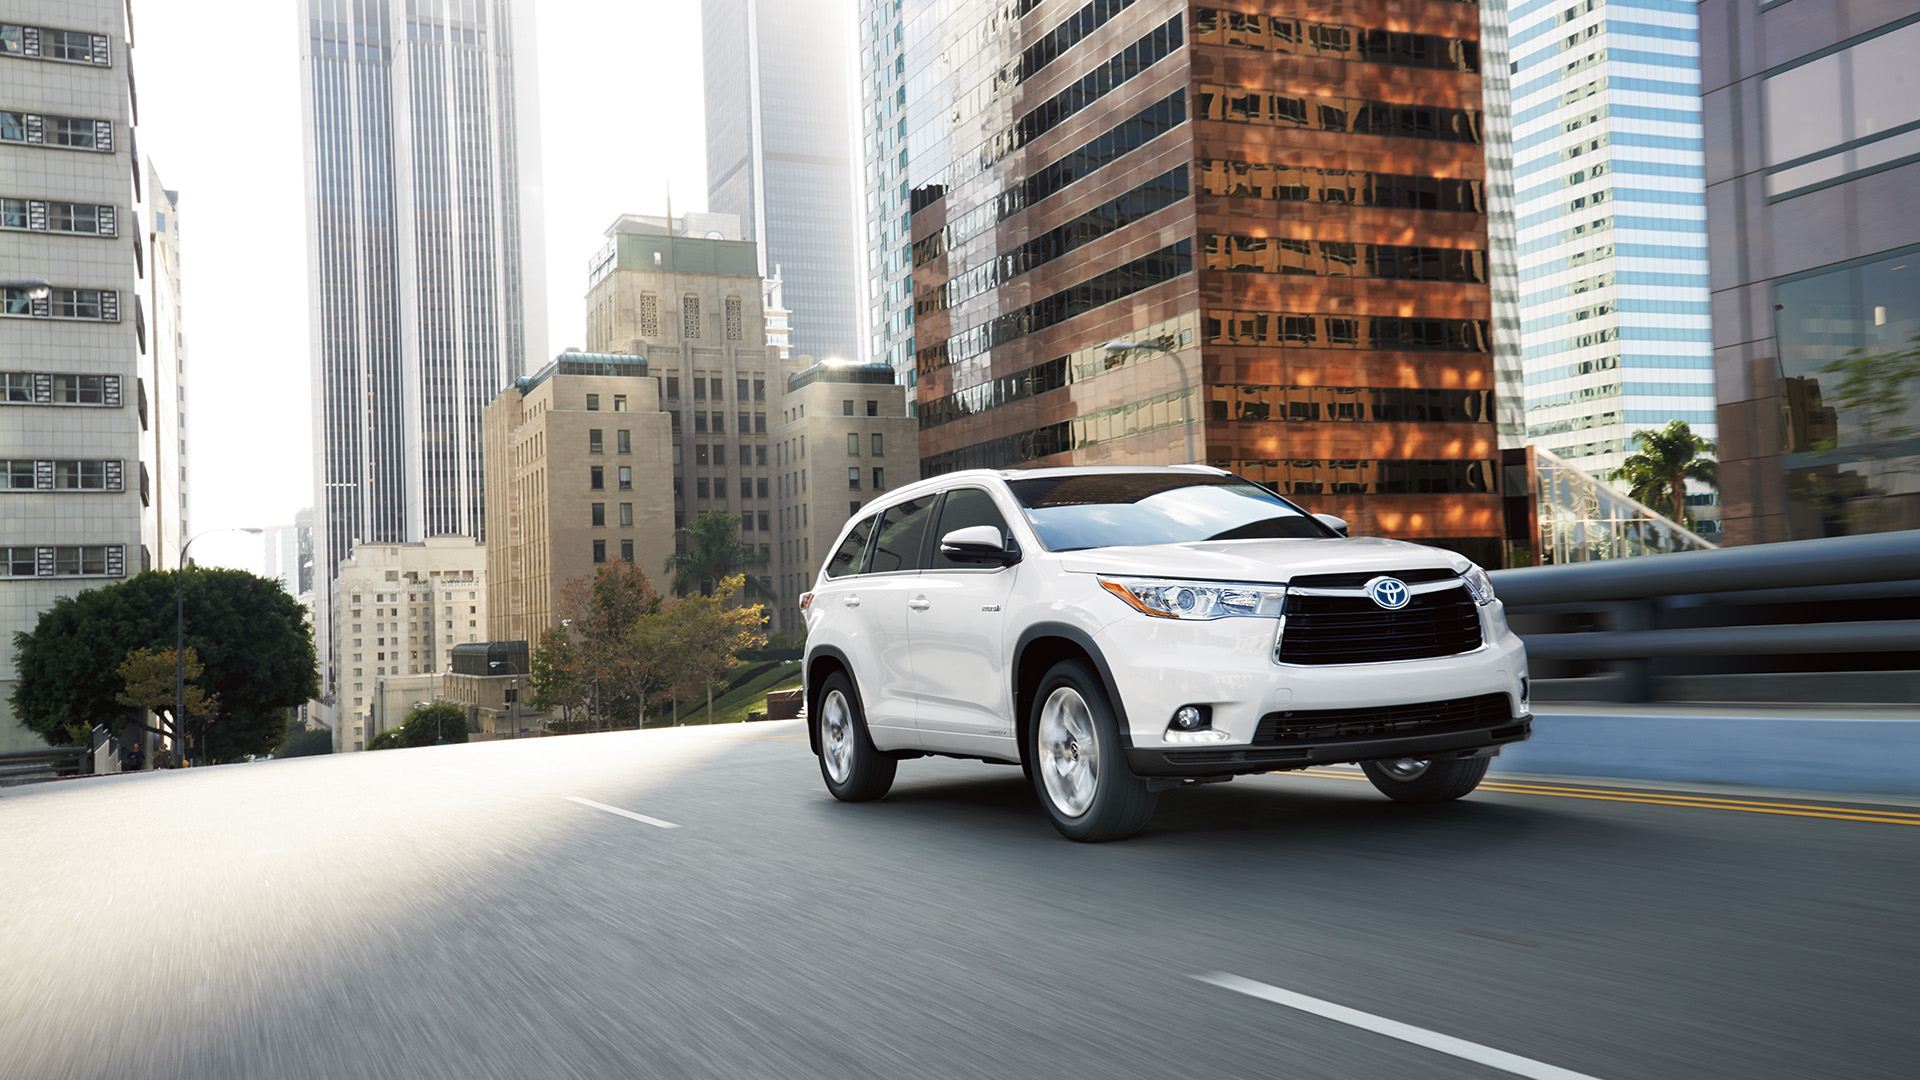 The Toyota Highlander Has Impressive Technological Features